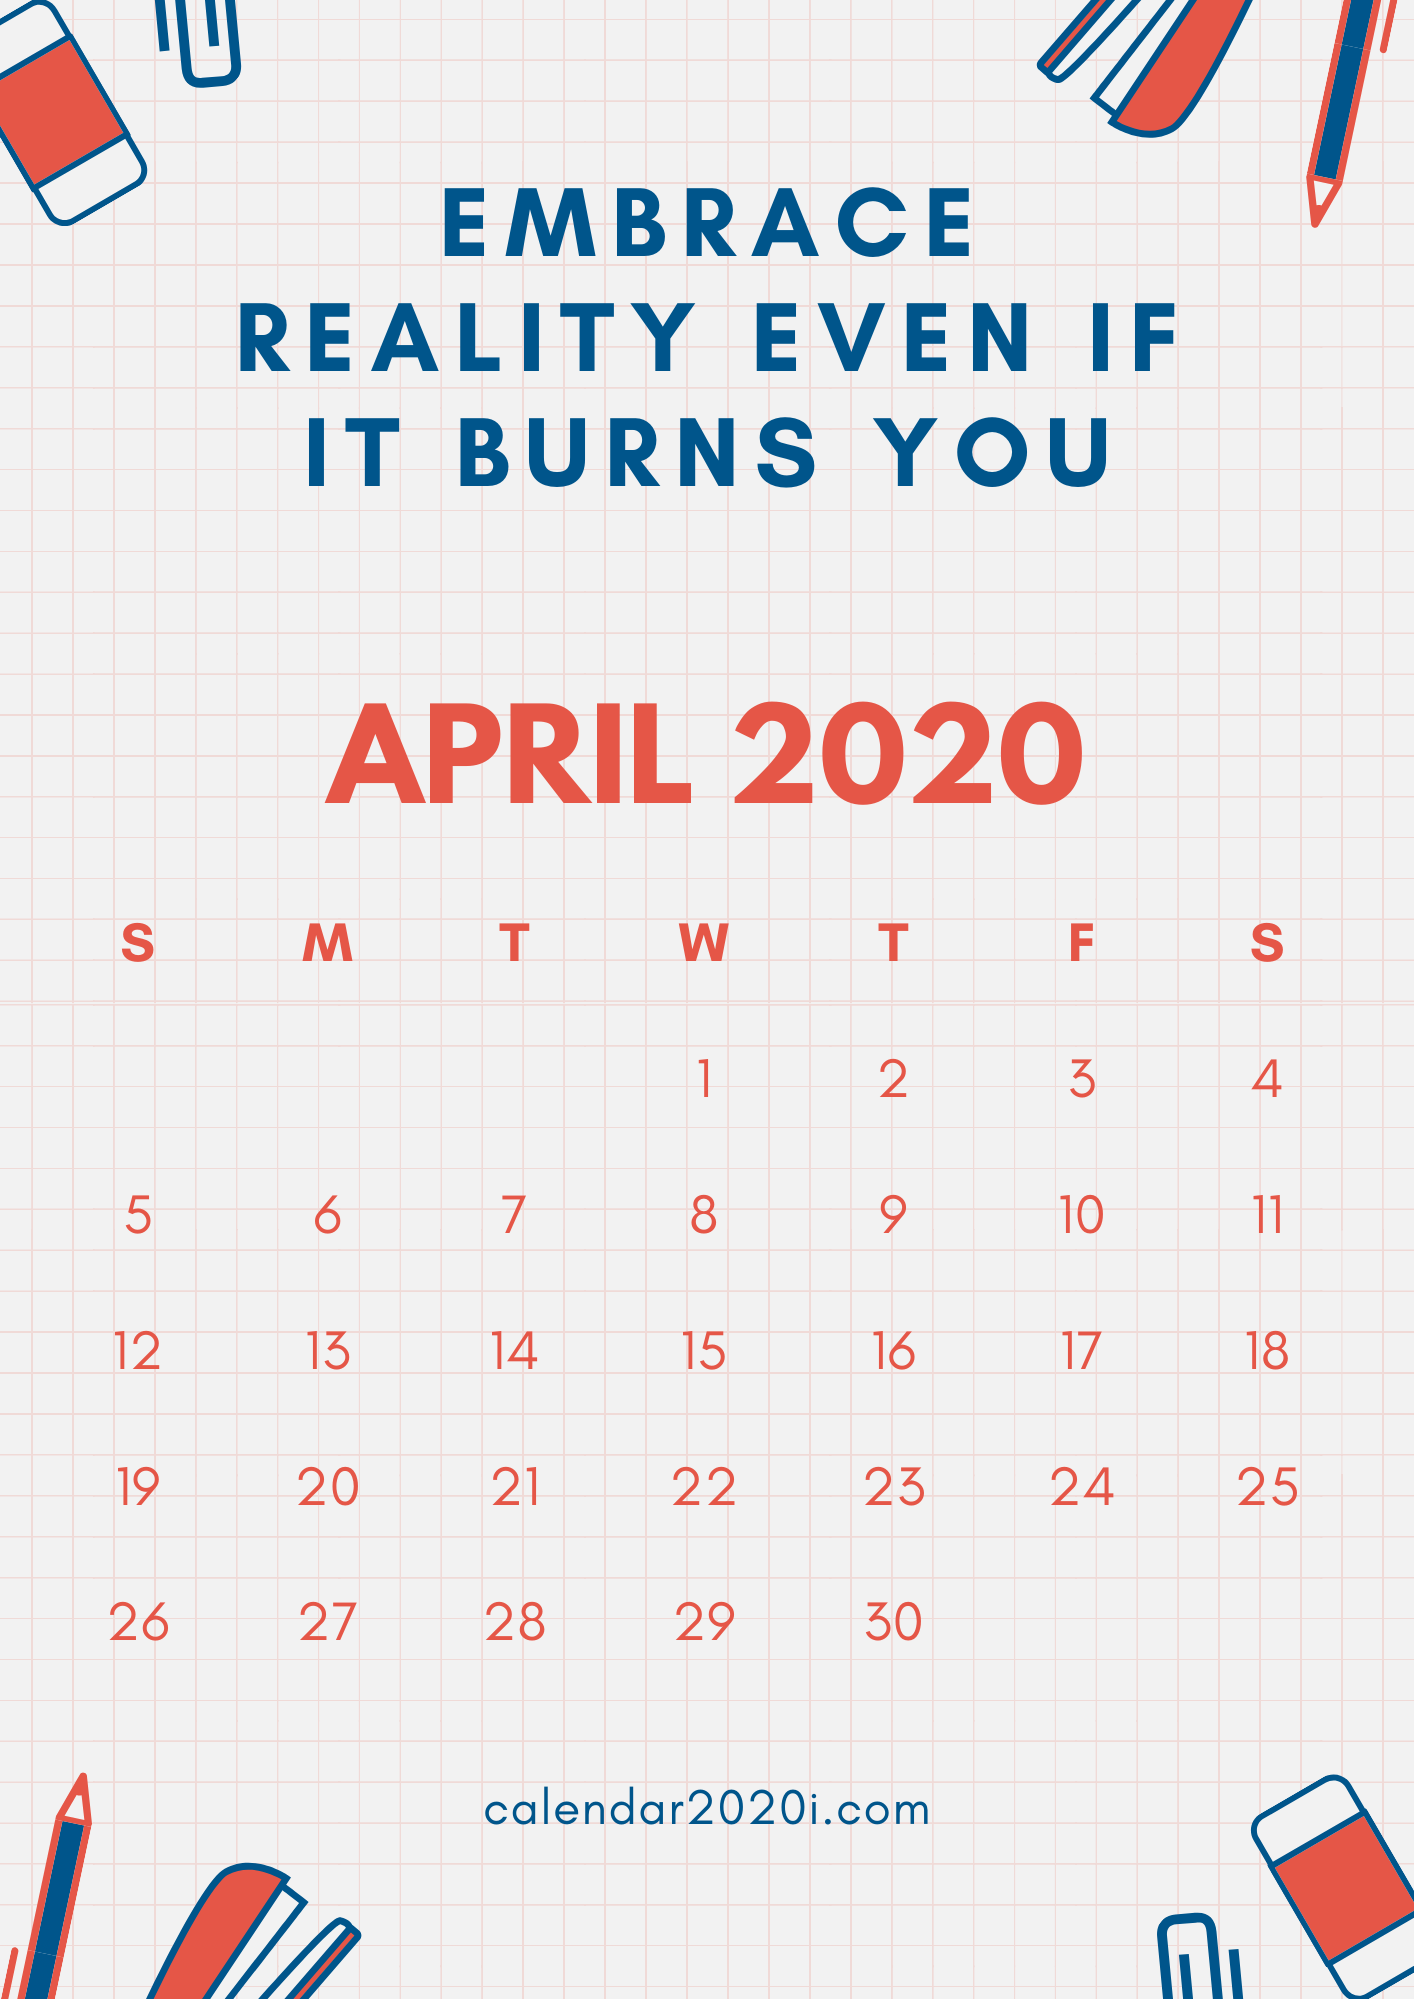 Inspiring April 2020 Calendar With Quotes | Calendar 2020 in April Calendar Quotes And Sayings